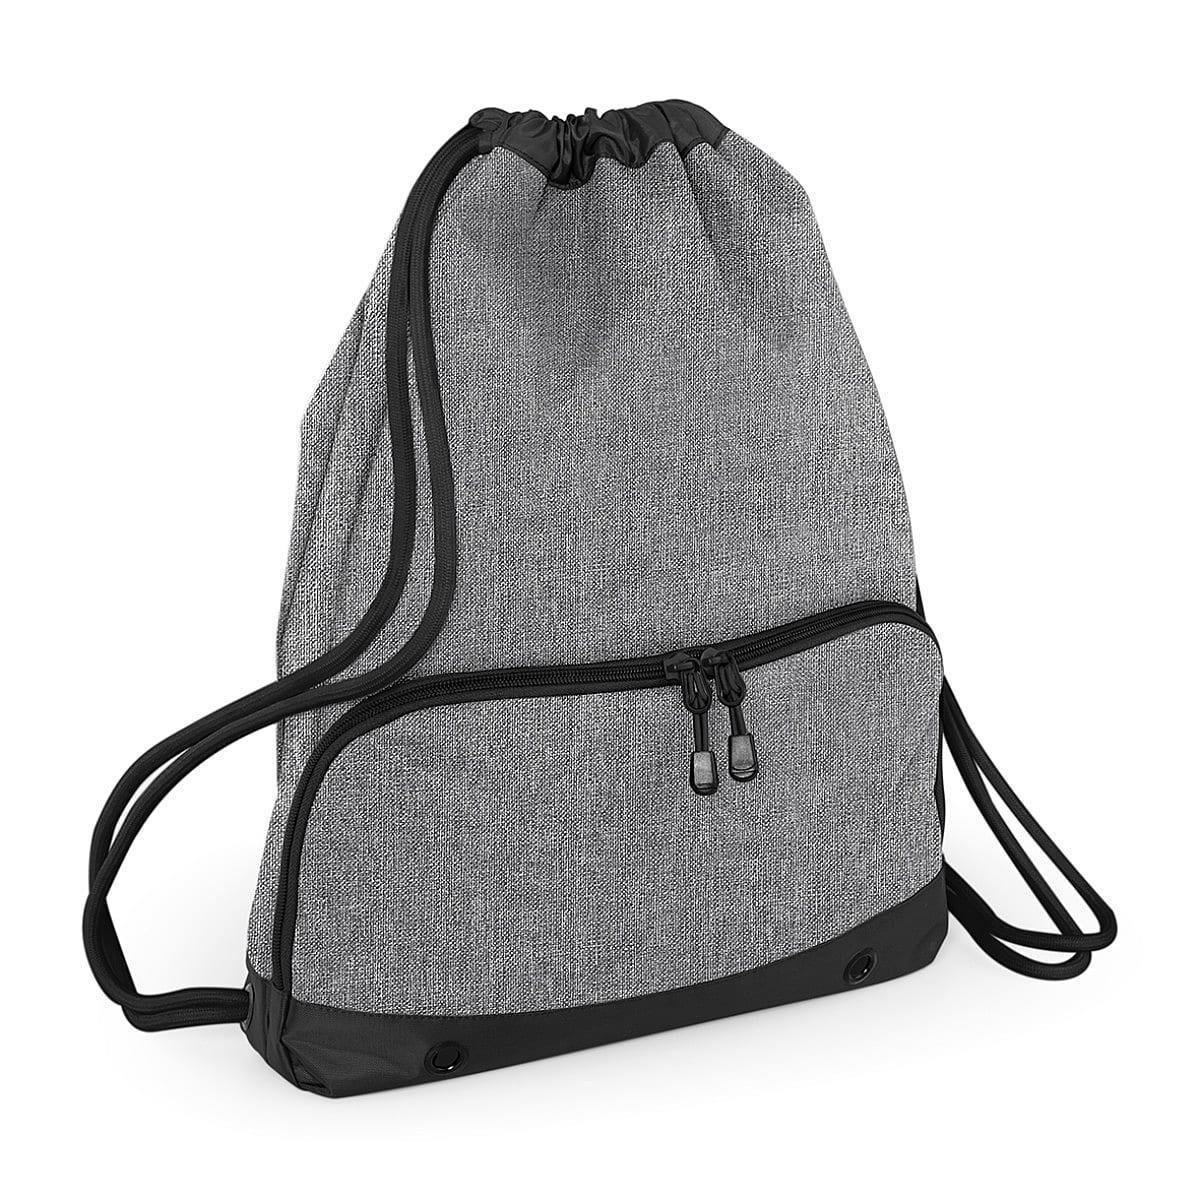 Bagbase Athleisure Gymsac in Grey Marl (Product Code: BG542)